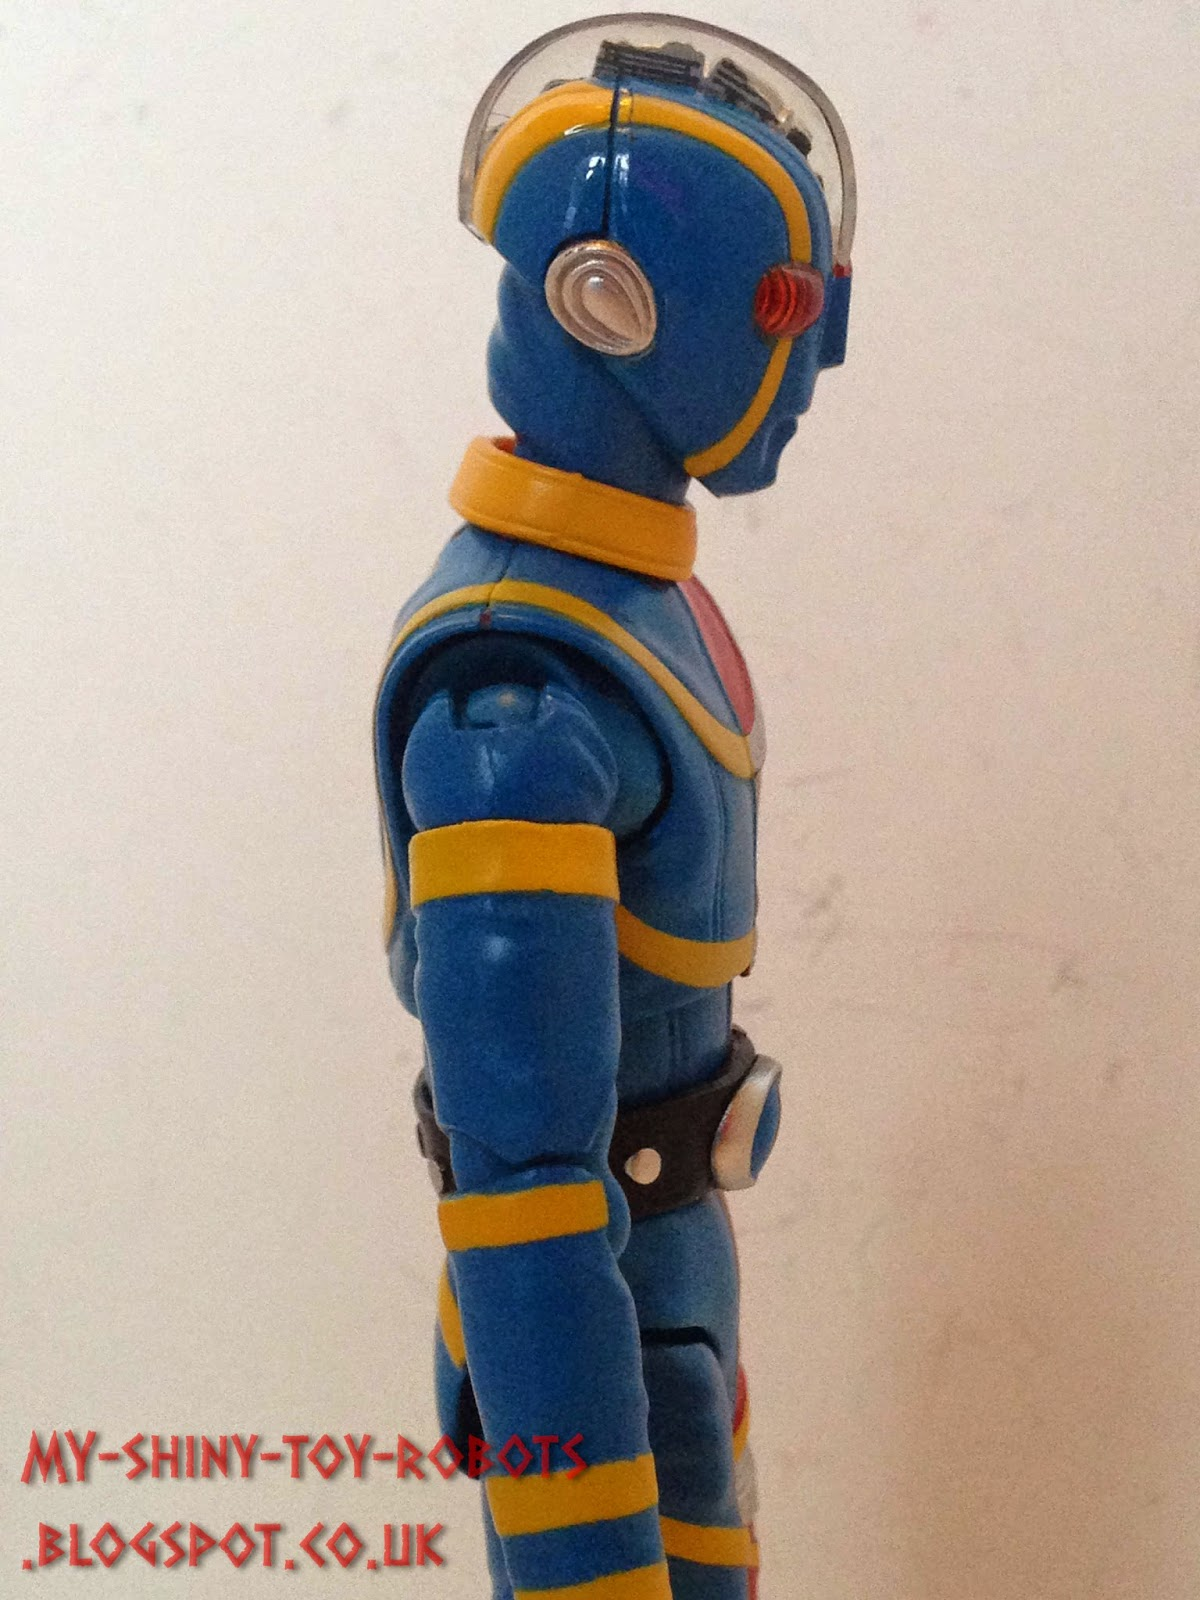 Kikaider's right side